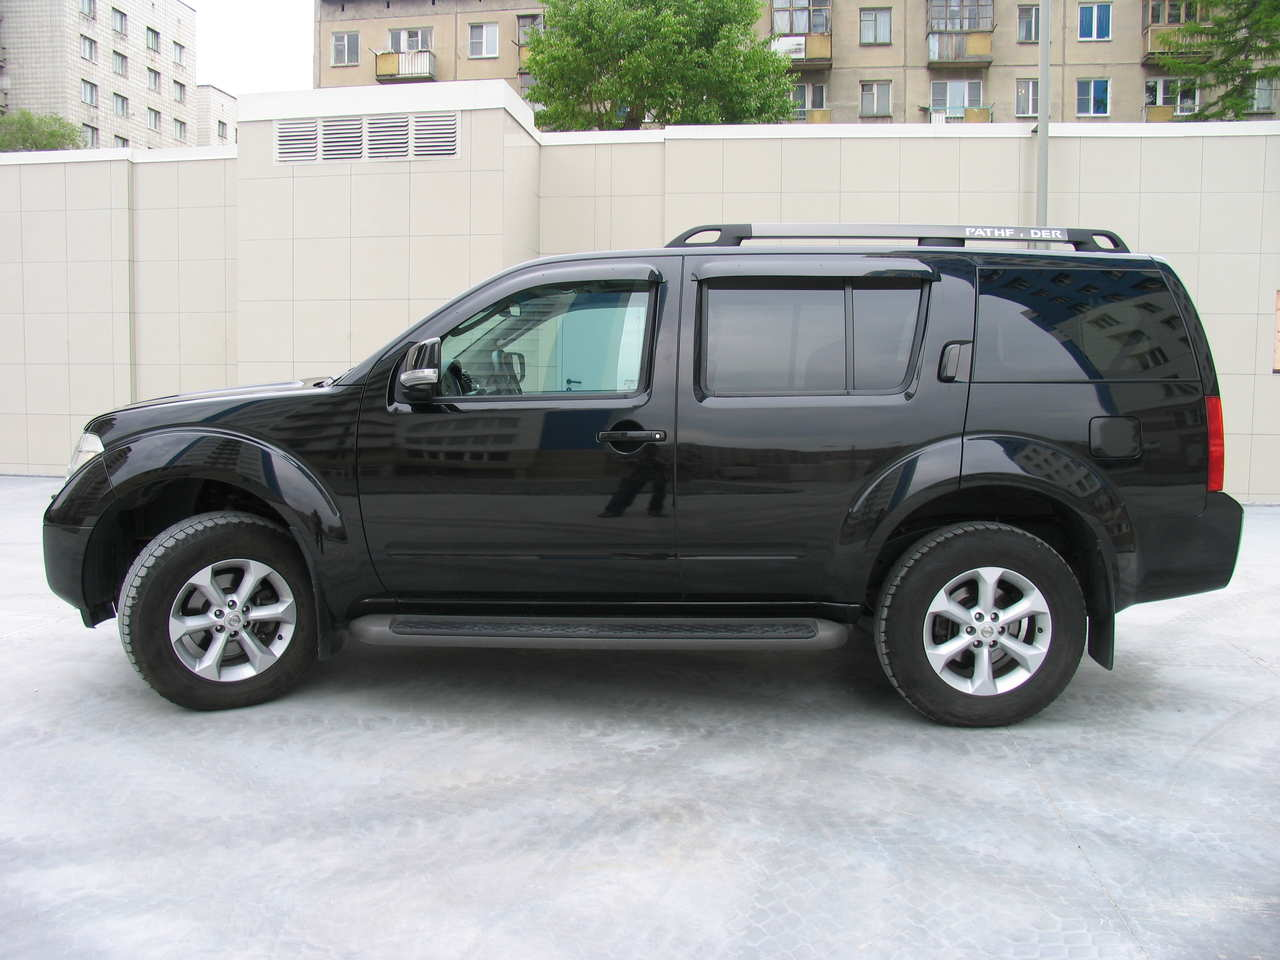 Used 2008 Nissan Pathfinder Photos 2500cc Diesel